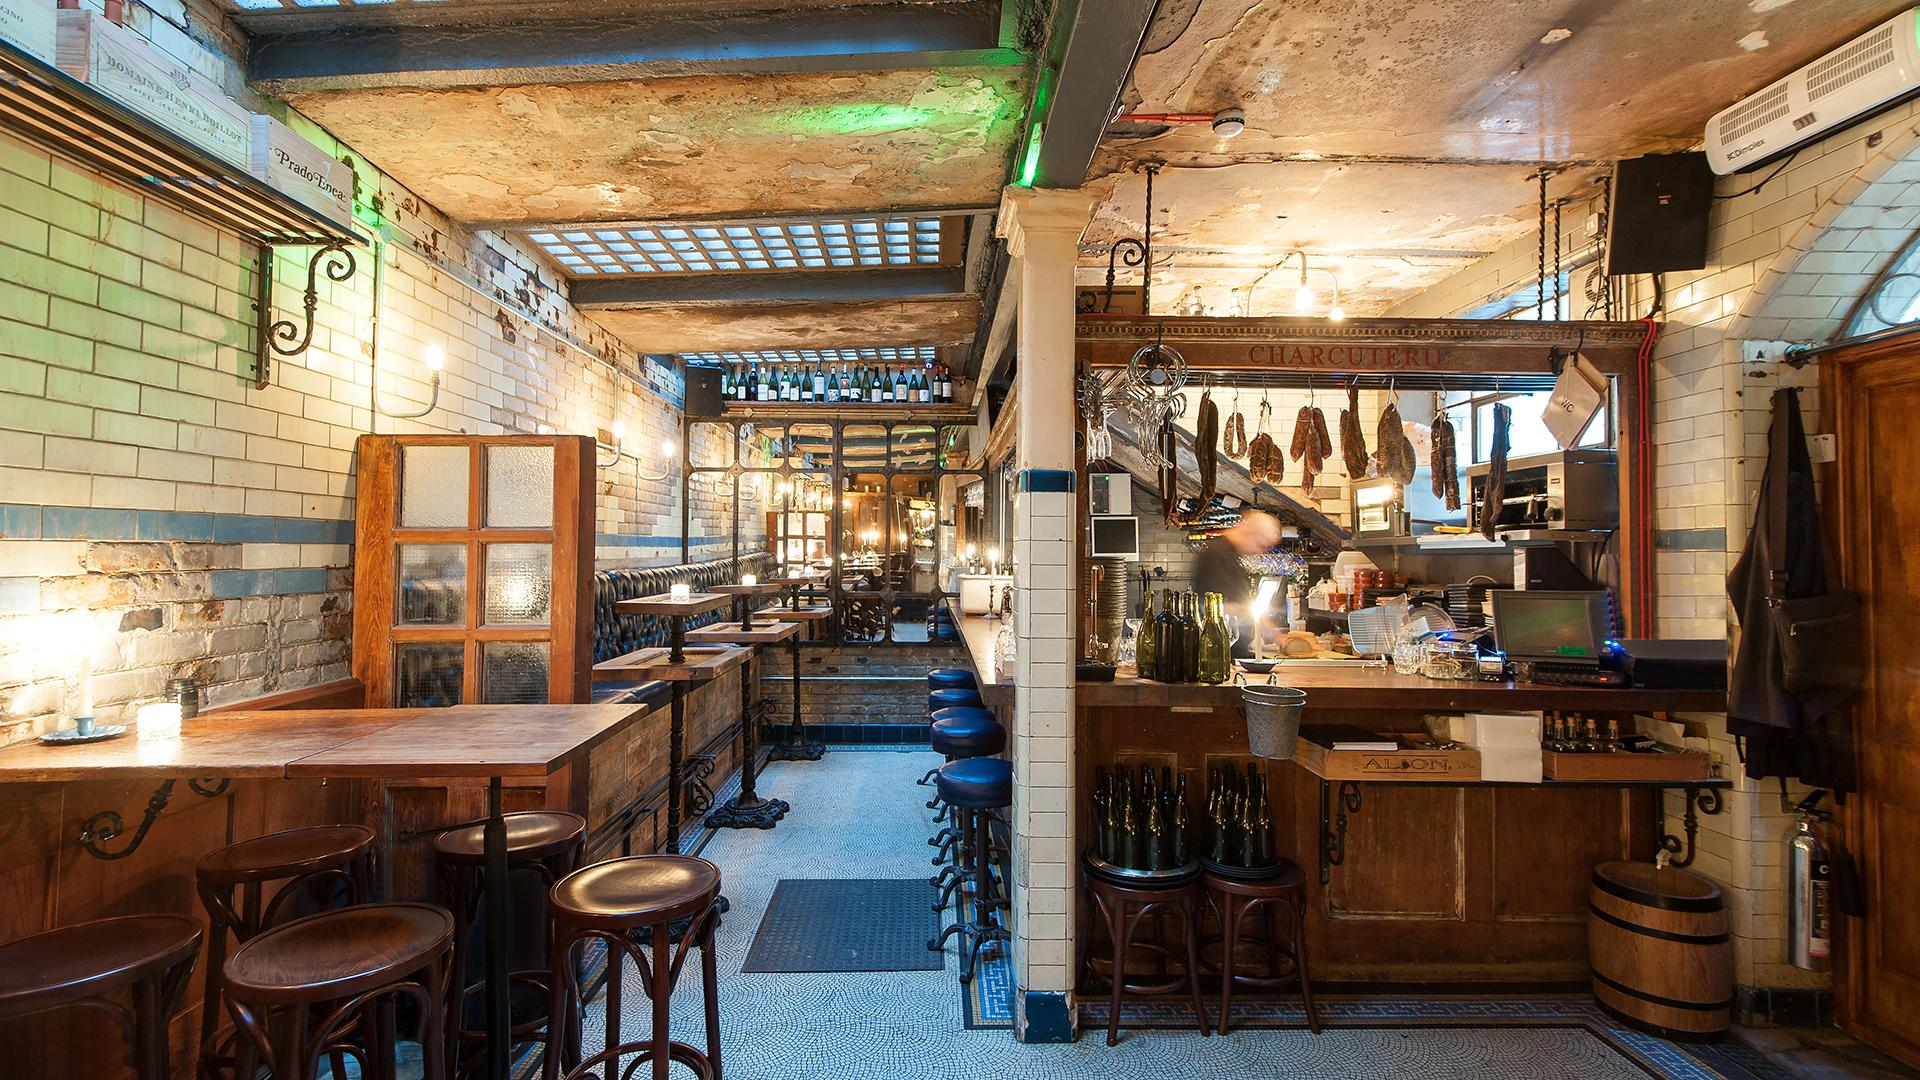 Where to eat and drink in Clapham